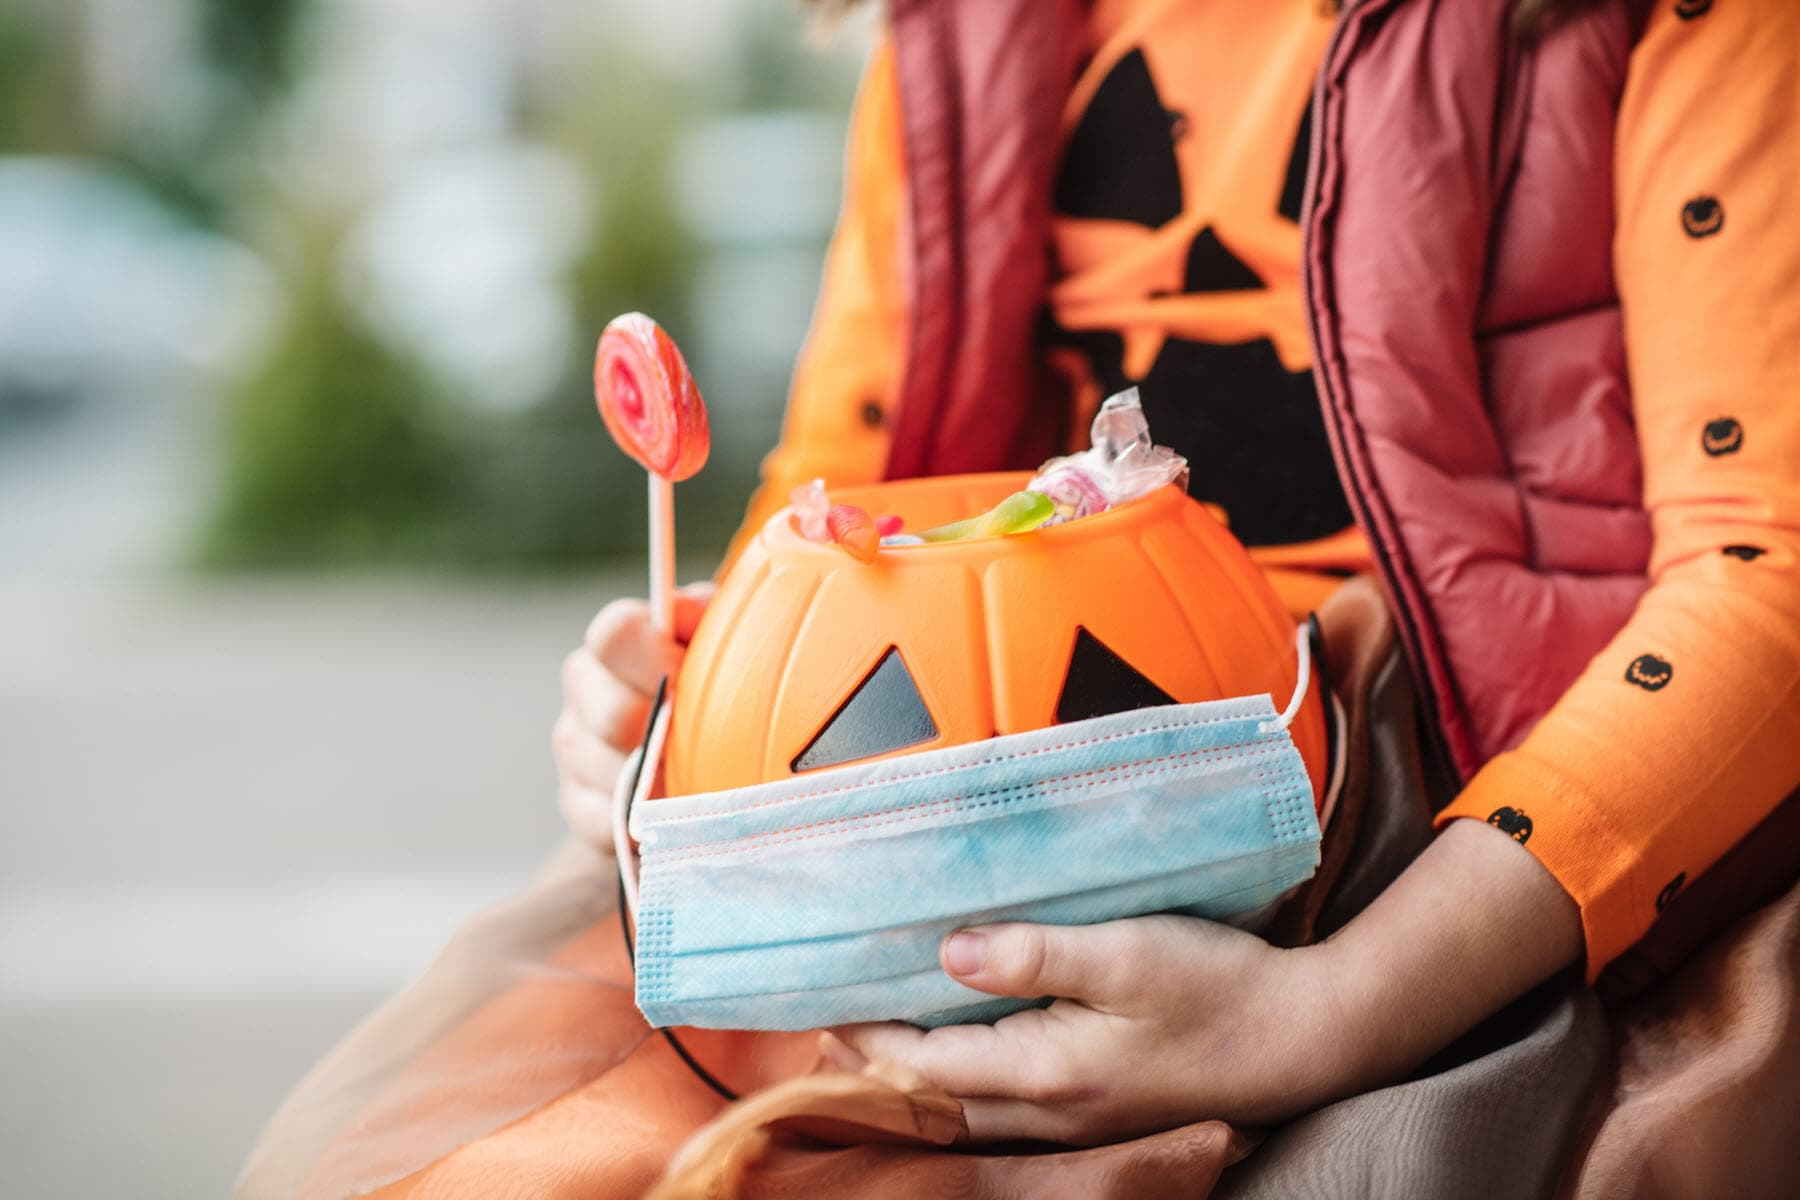 CDC Director Encourages Halloween Trick-or-Treating